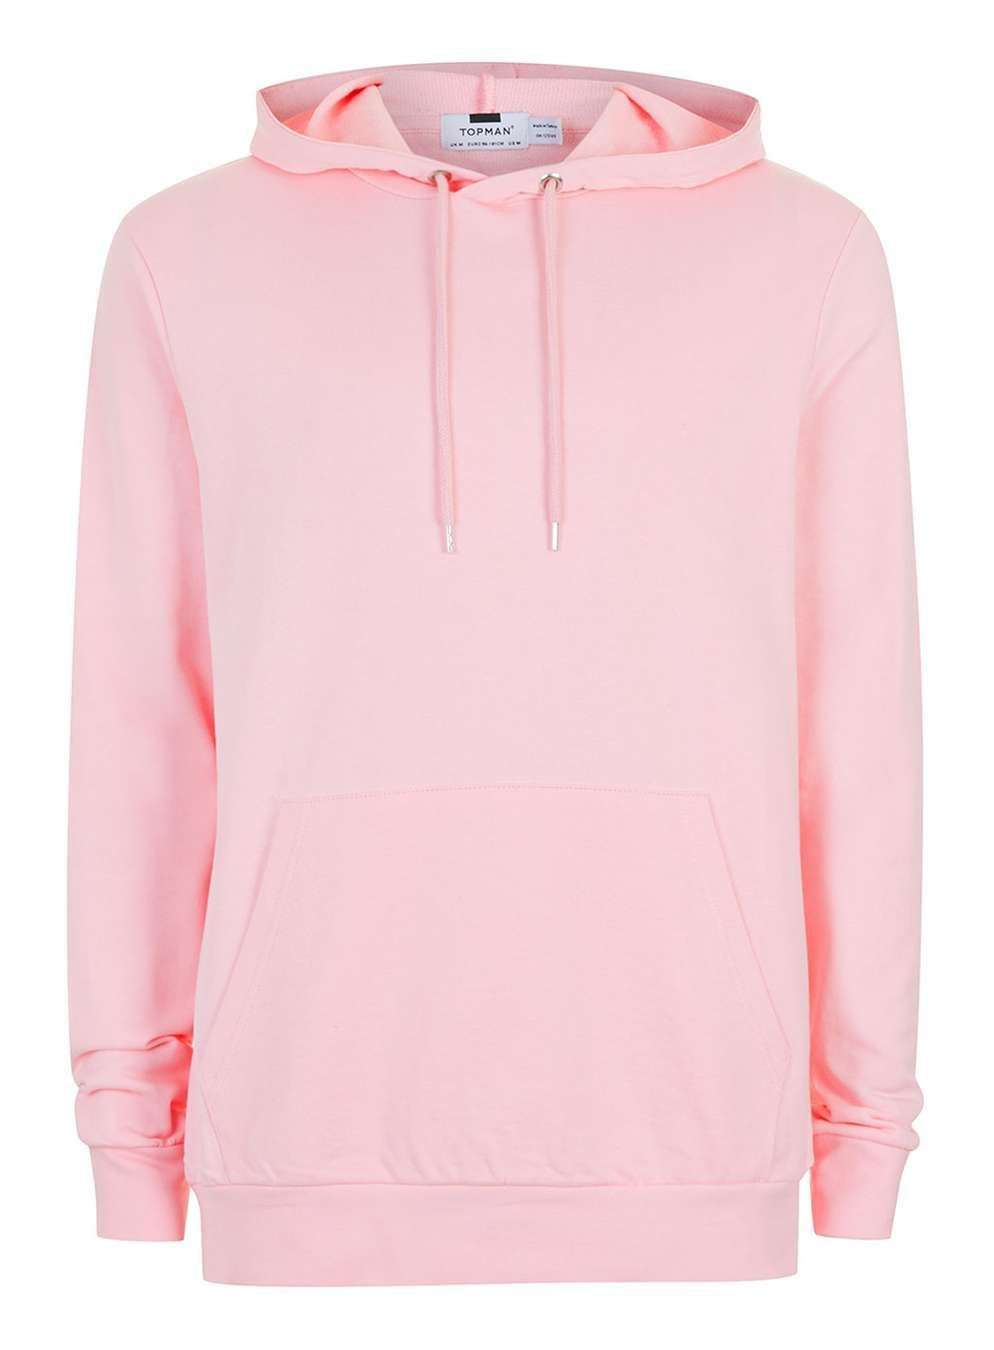 new specials new arrivals new high quality Light Pink Classic Fit Hoodie | Hoodies, Light pink hoodie, Mens ...